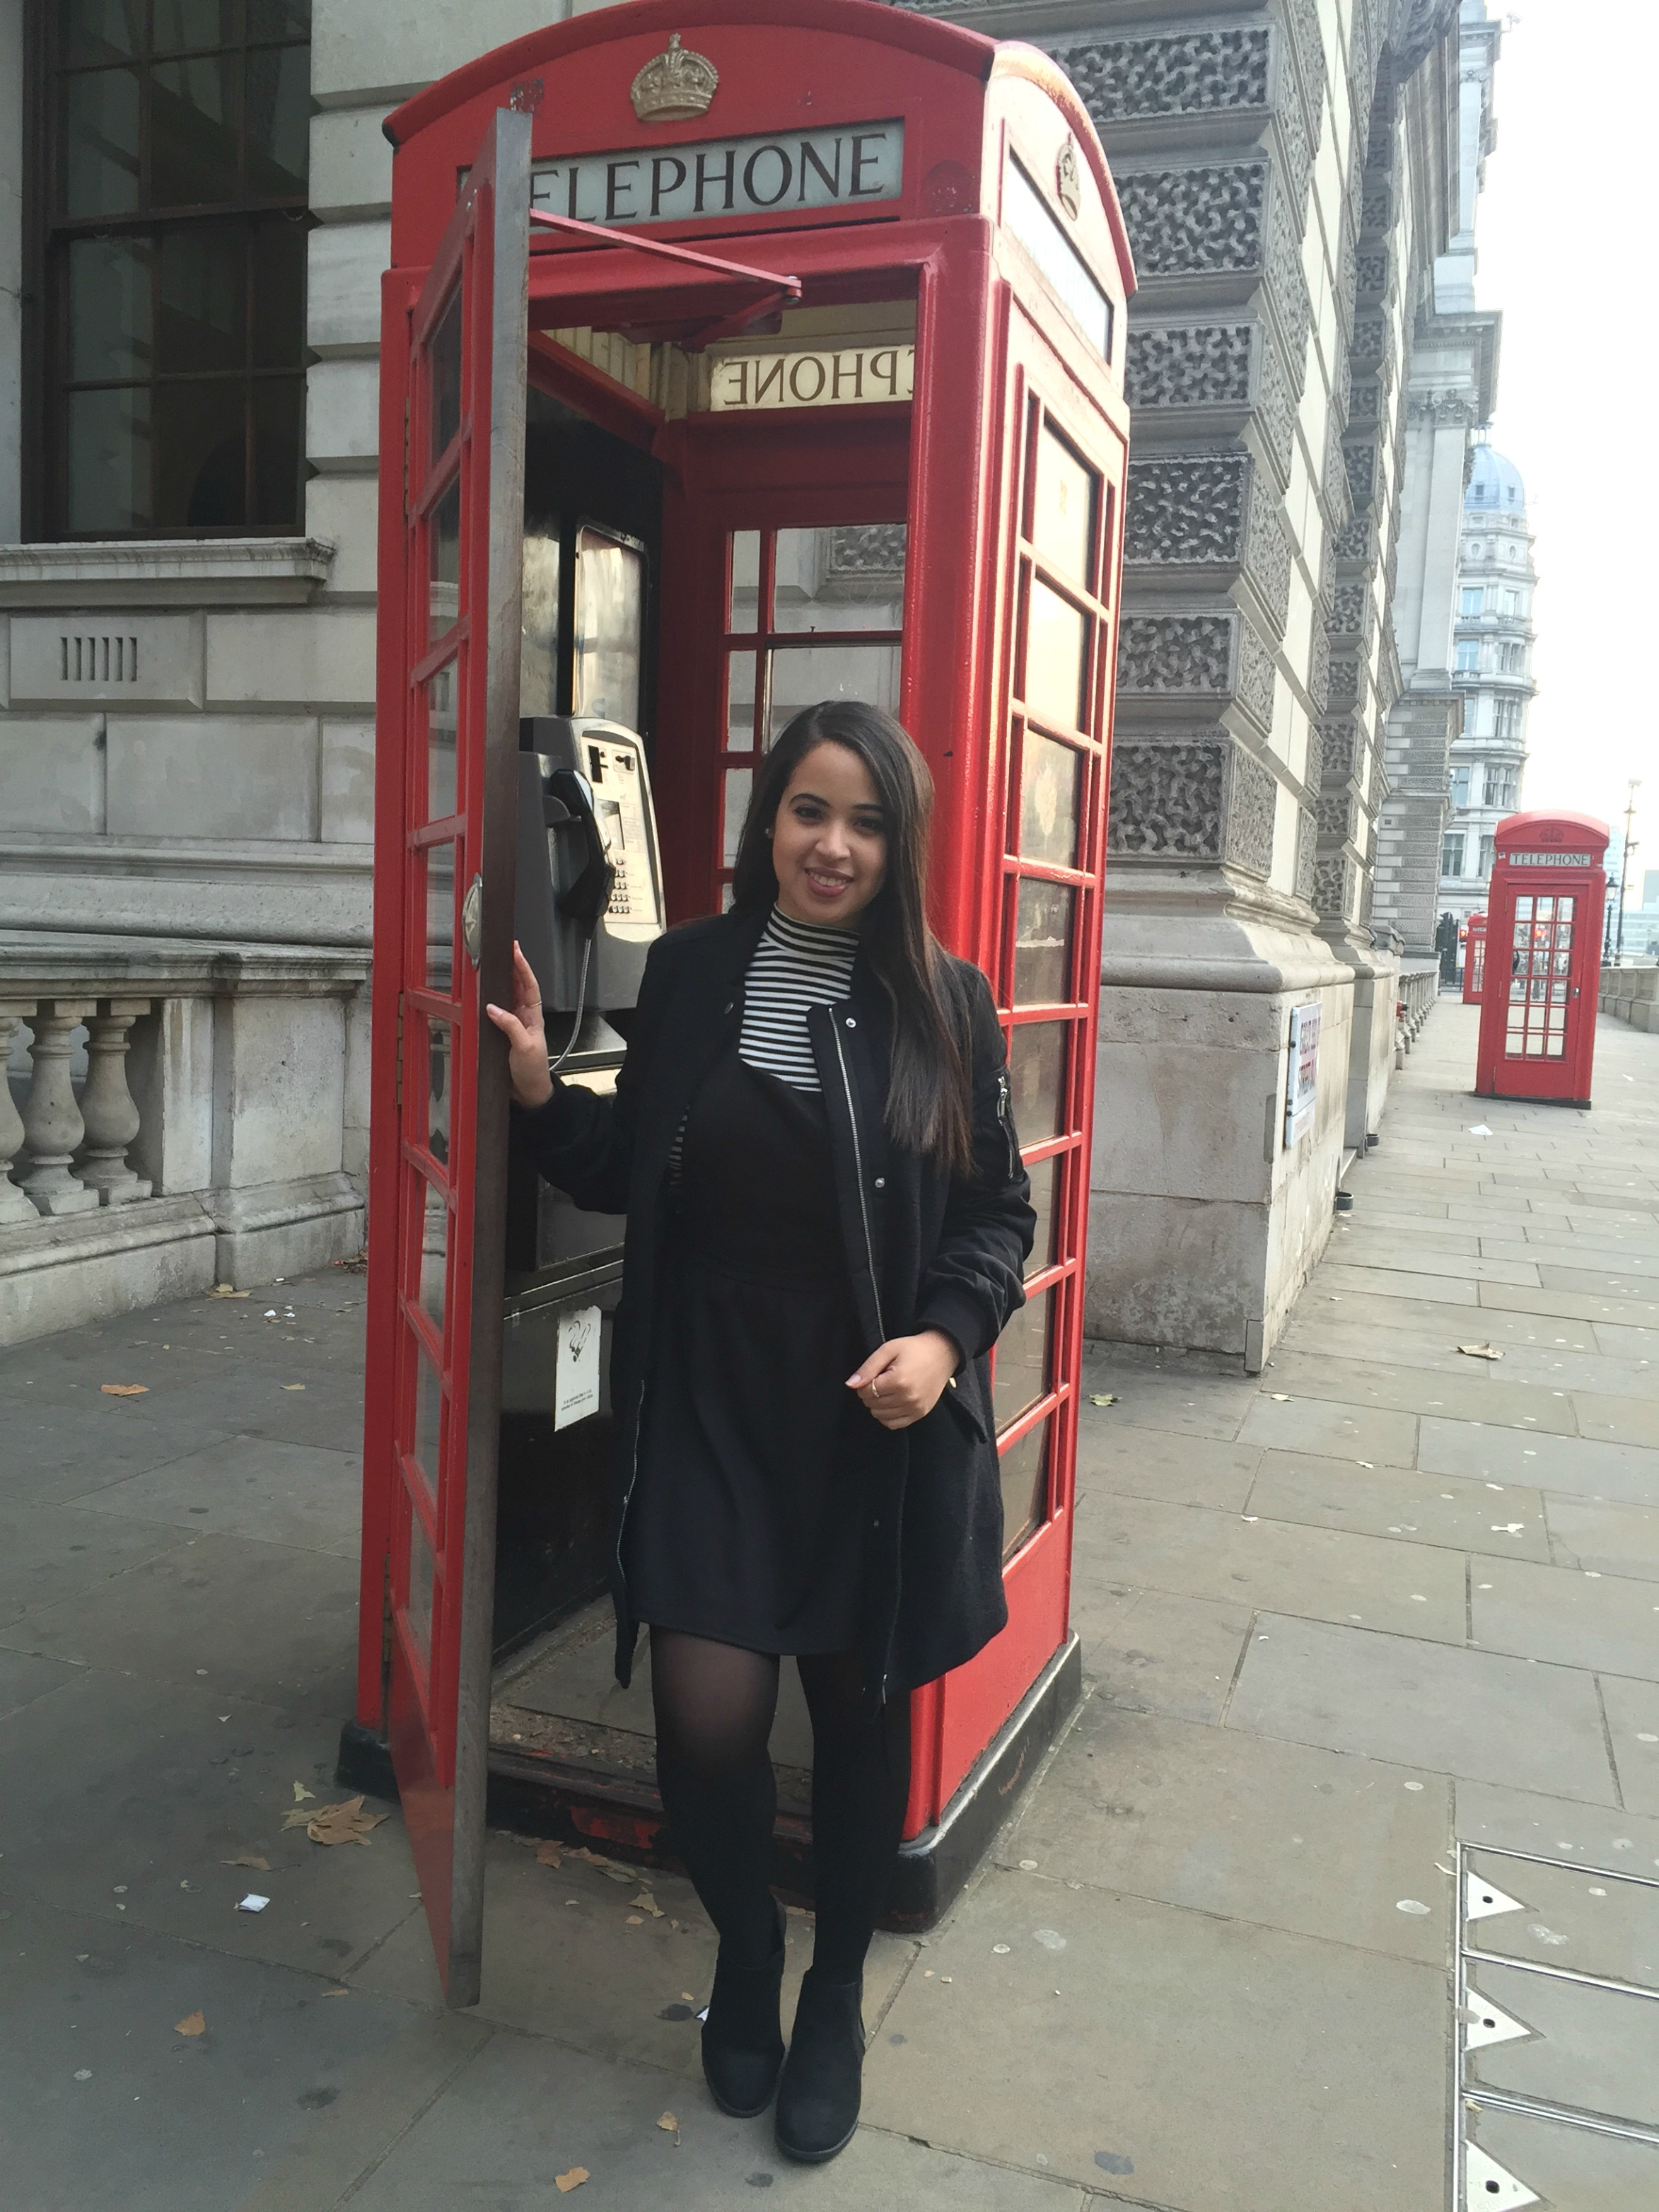 London Travel Diary red telephone booth